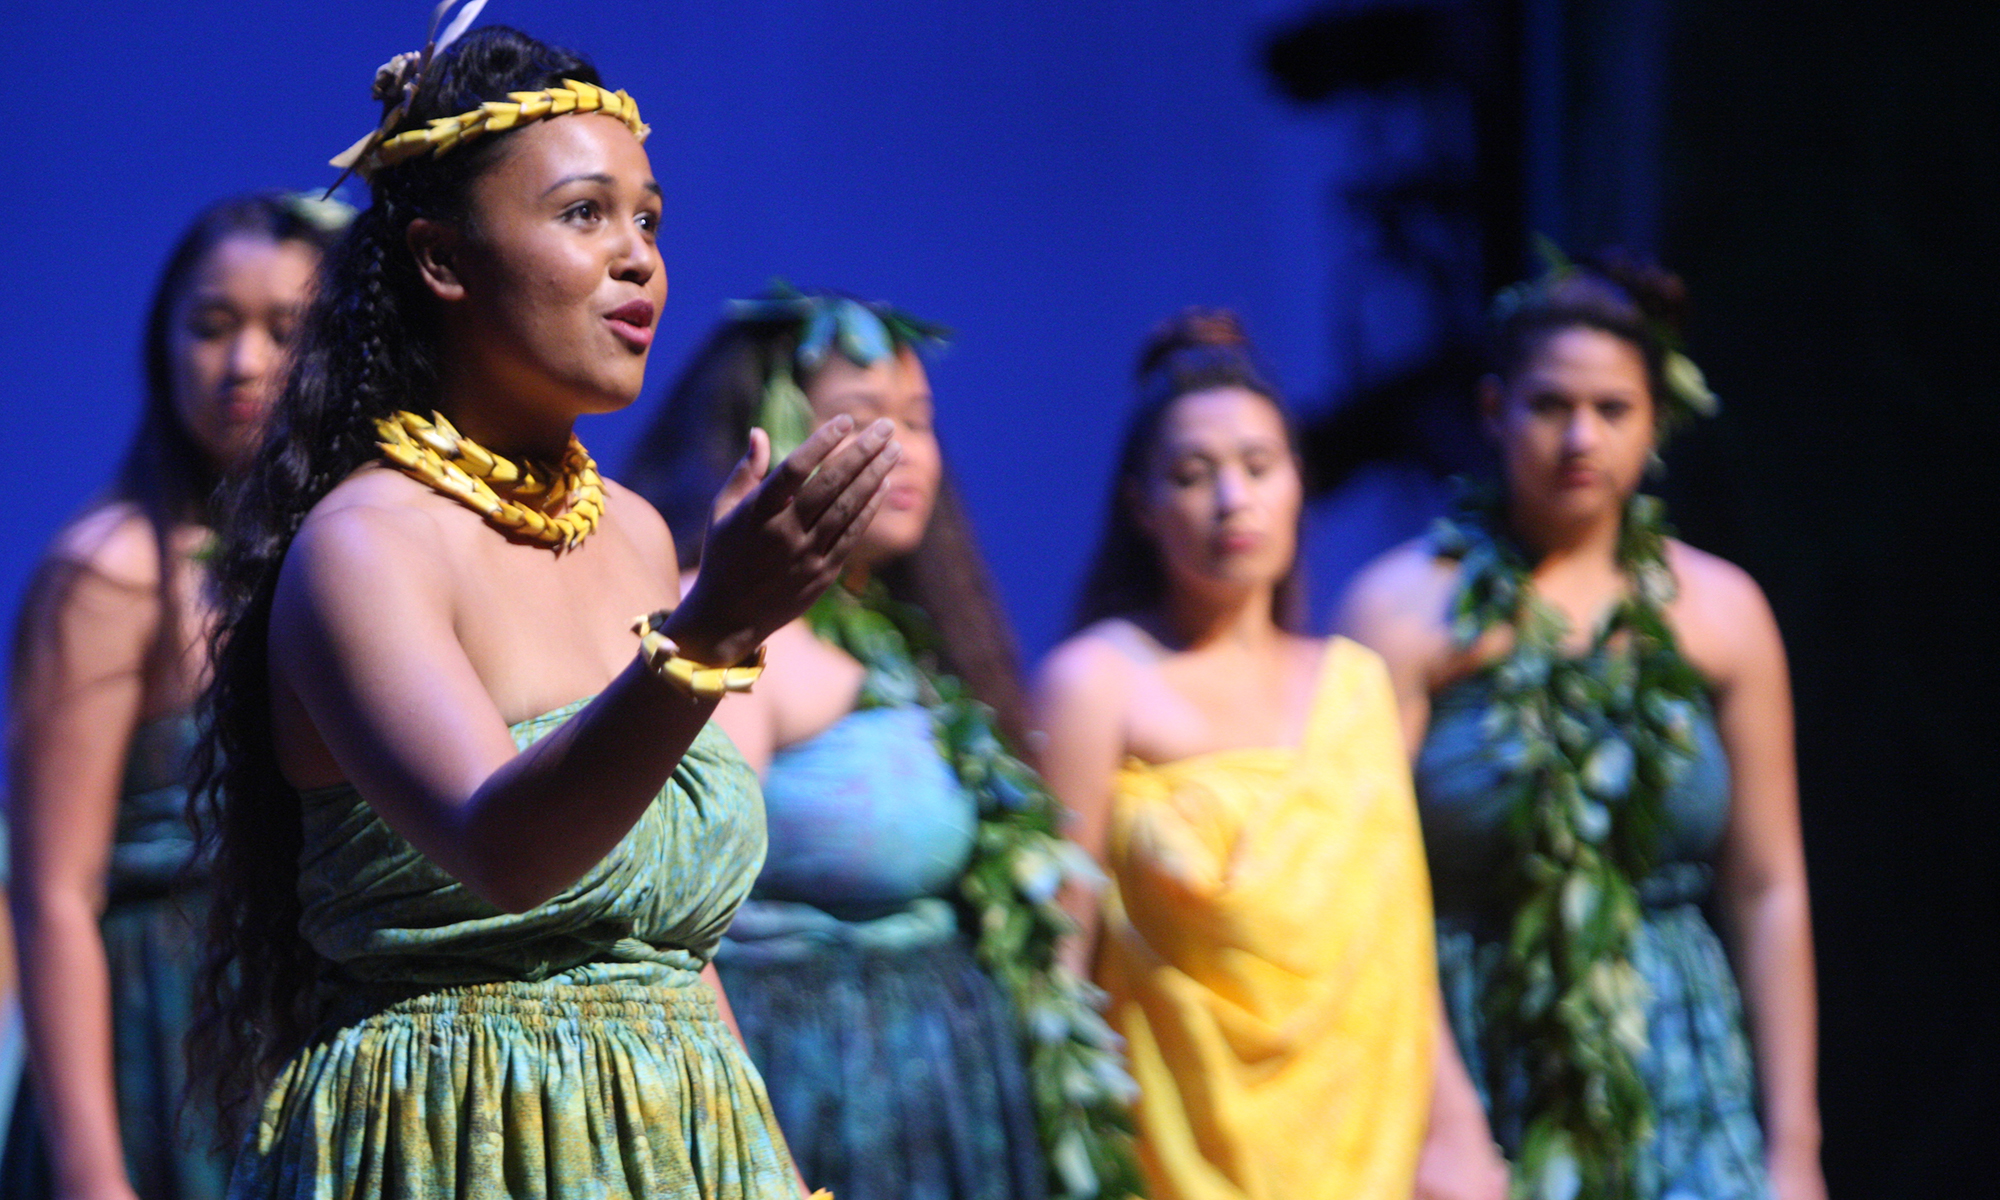 group of Hawaiian performers singing onstage